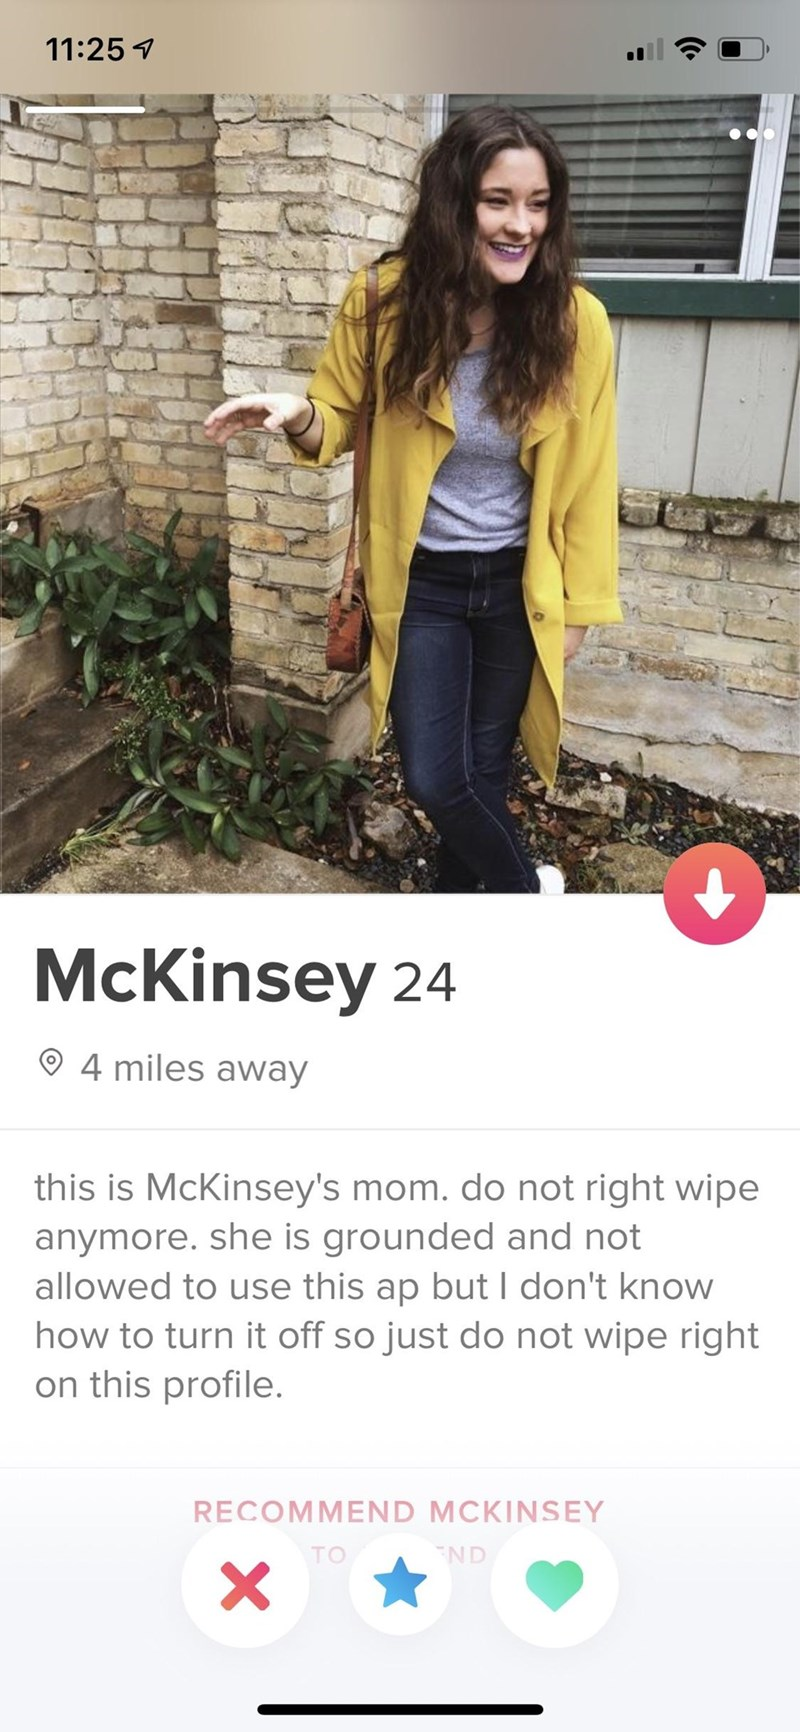 Clothing - 11:25 McKinsey 24 4 miles away this is McKinsey's mom. do not right wipe anymore. she is grounded and not allowed to use this ap but I don't know how to turn it off so just do not wipe right on this profile. RECOMMEND MCKINSEY ND TO X